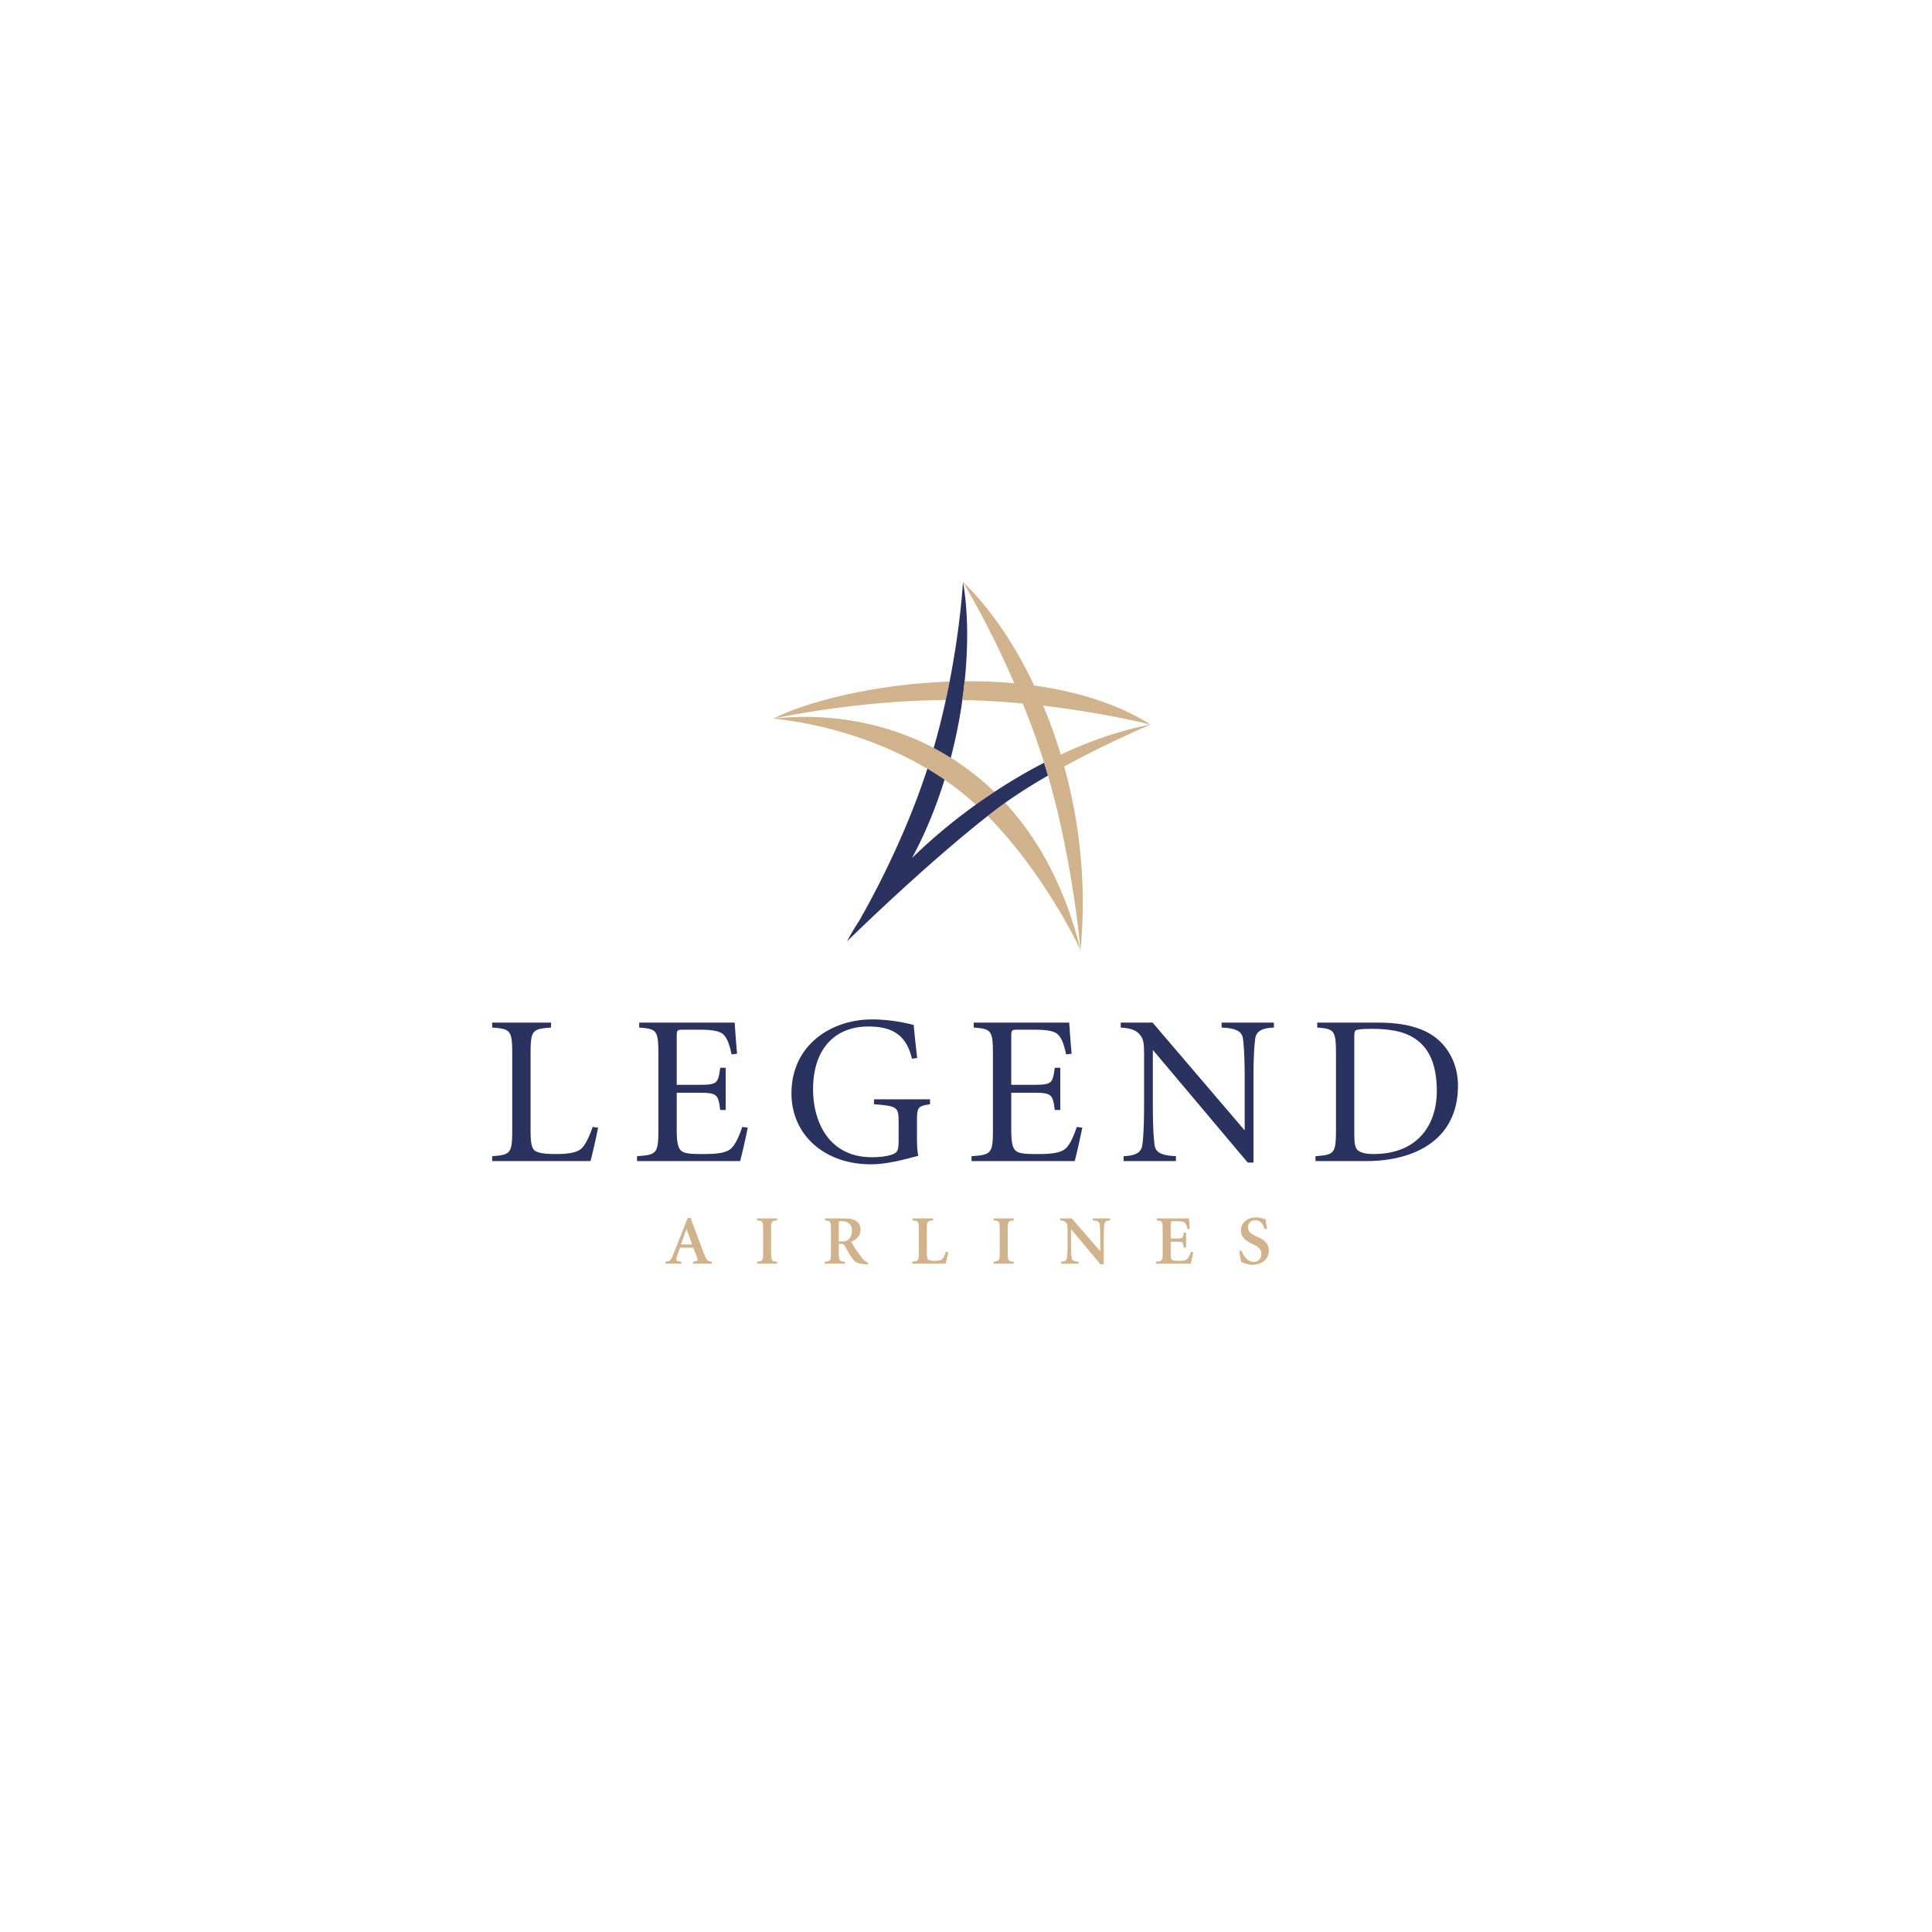 ND-legend-logo.jpg